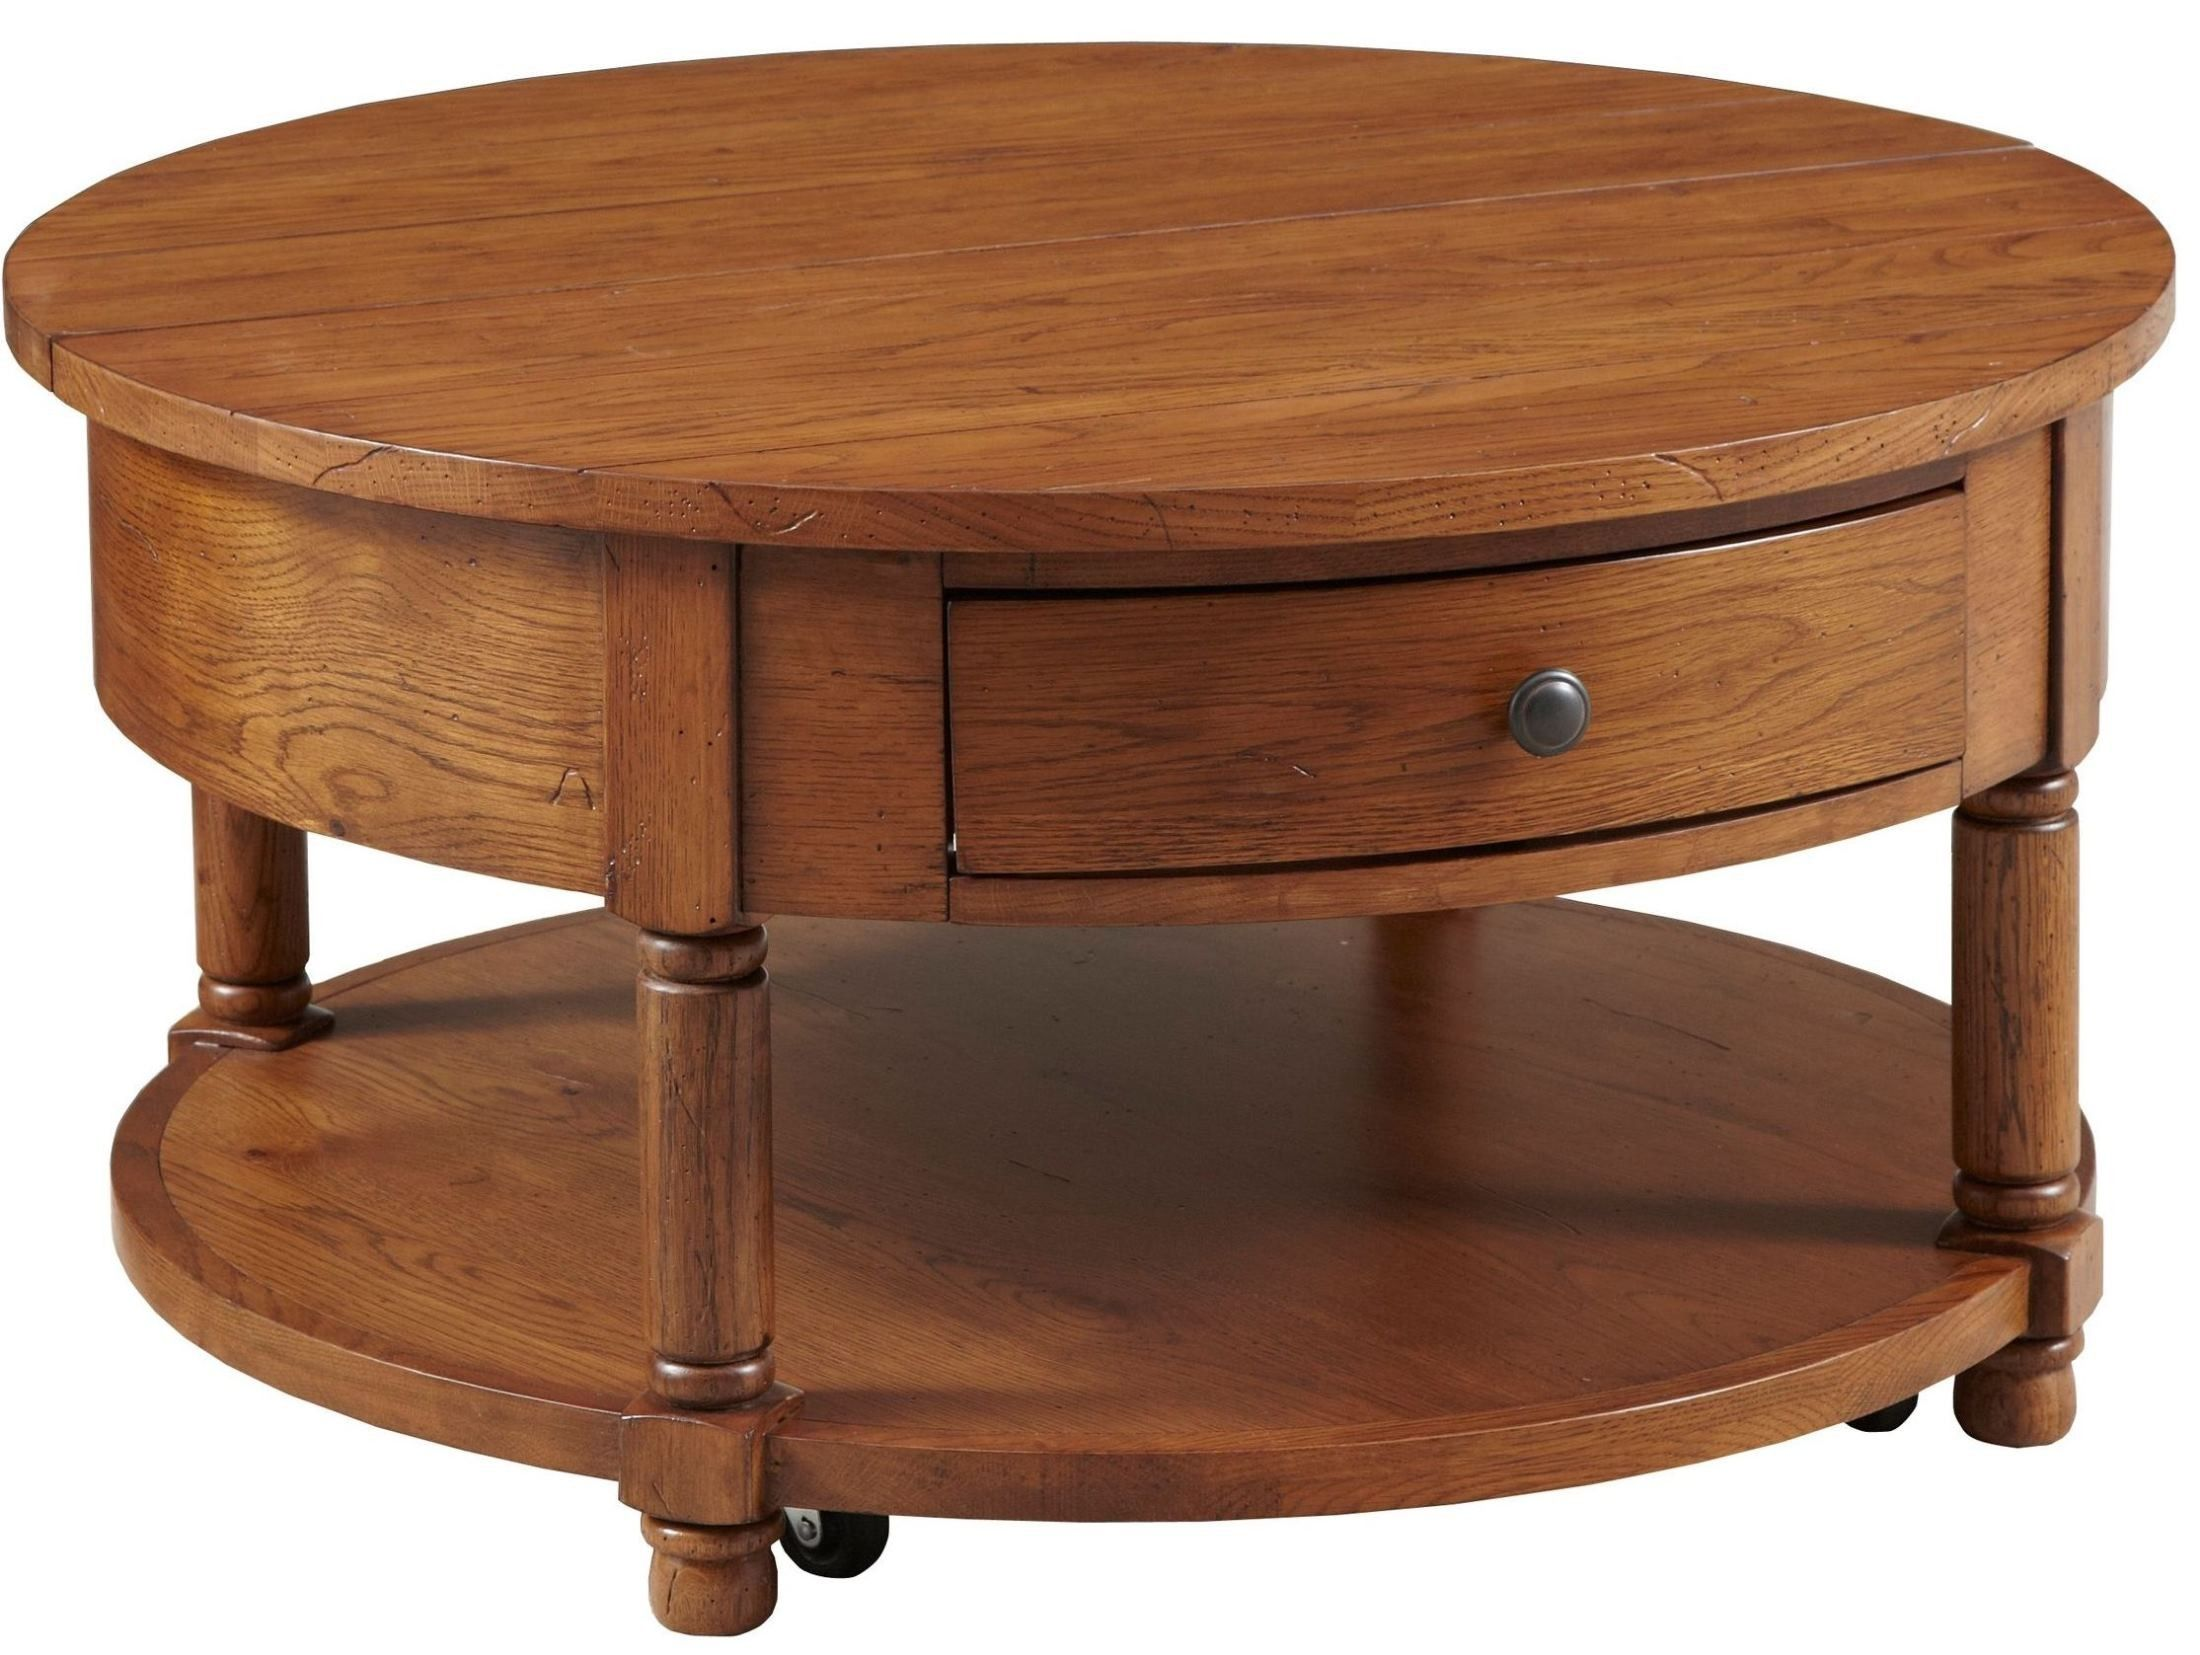 Attic Heirlooms Round Cocktail Table 3397 011 Broyhill Broyhill Furniture Furniture Round Cocktail Tables [ 1655 x 2200 Pixel ]